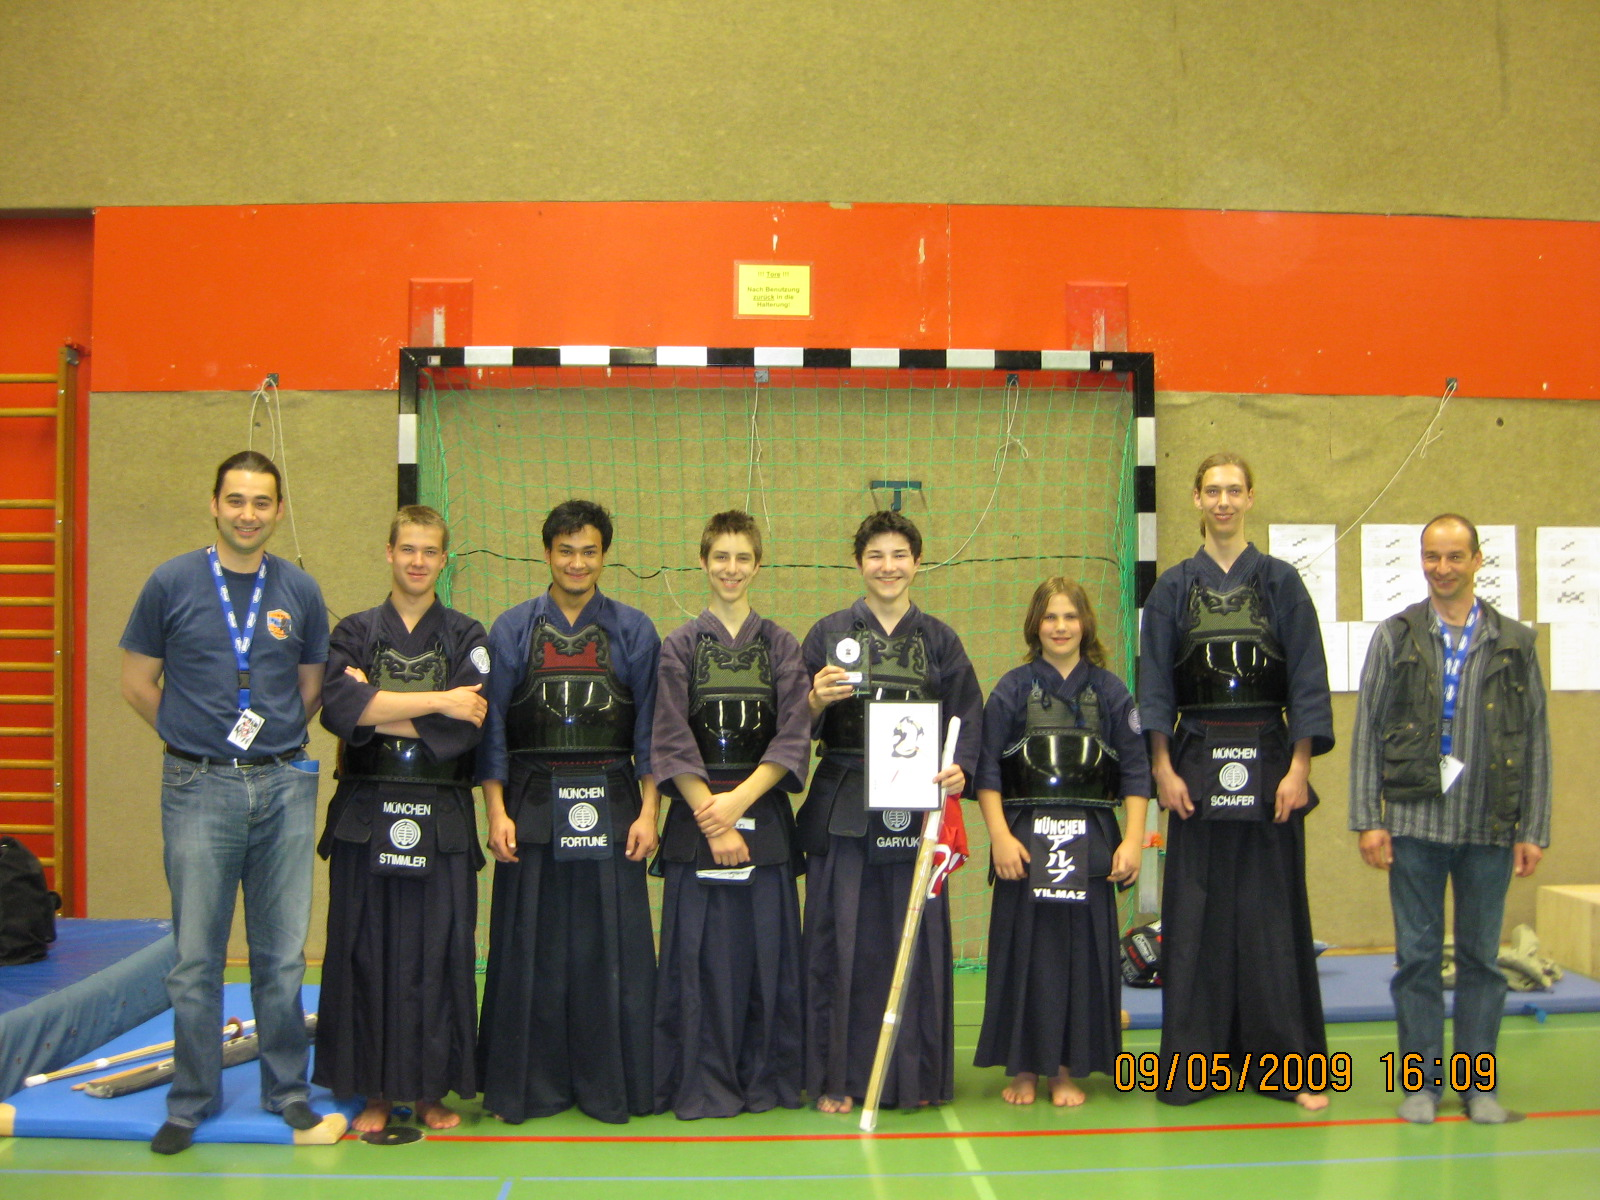 gruppenfoto-djc-2009